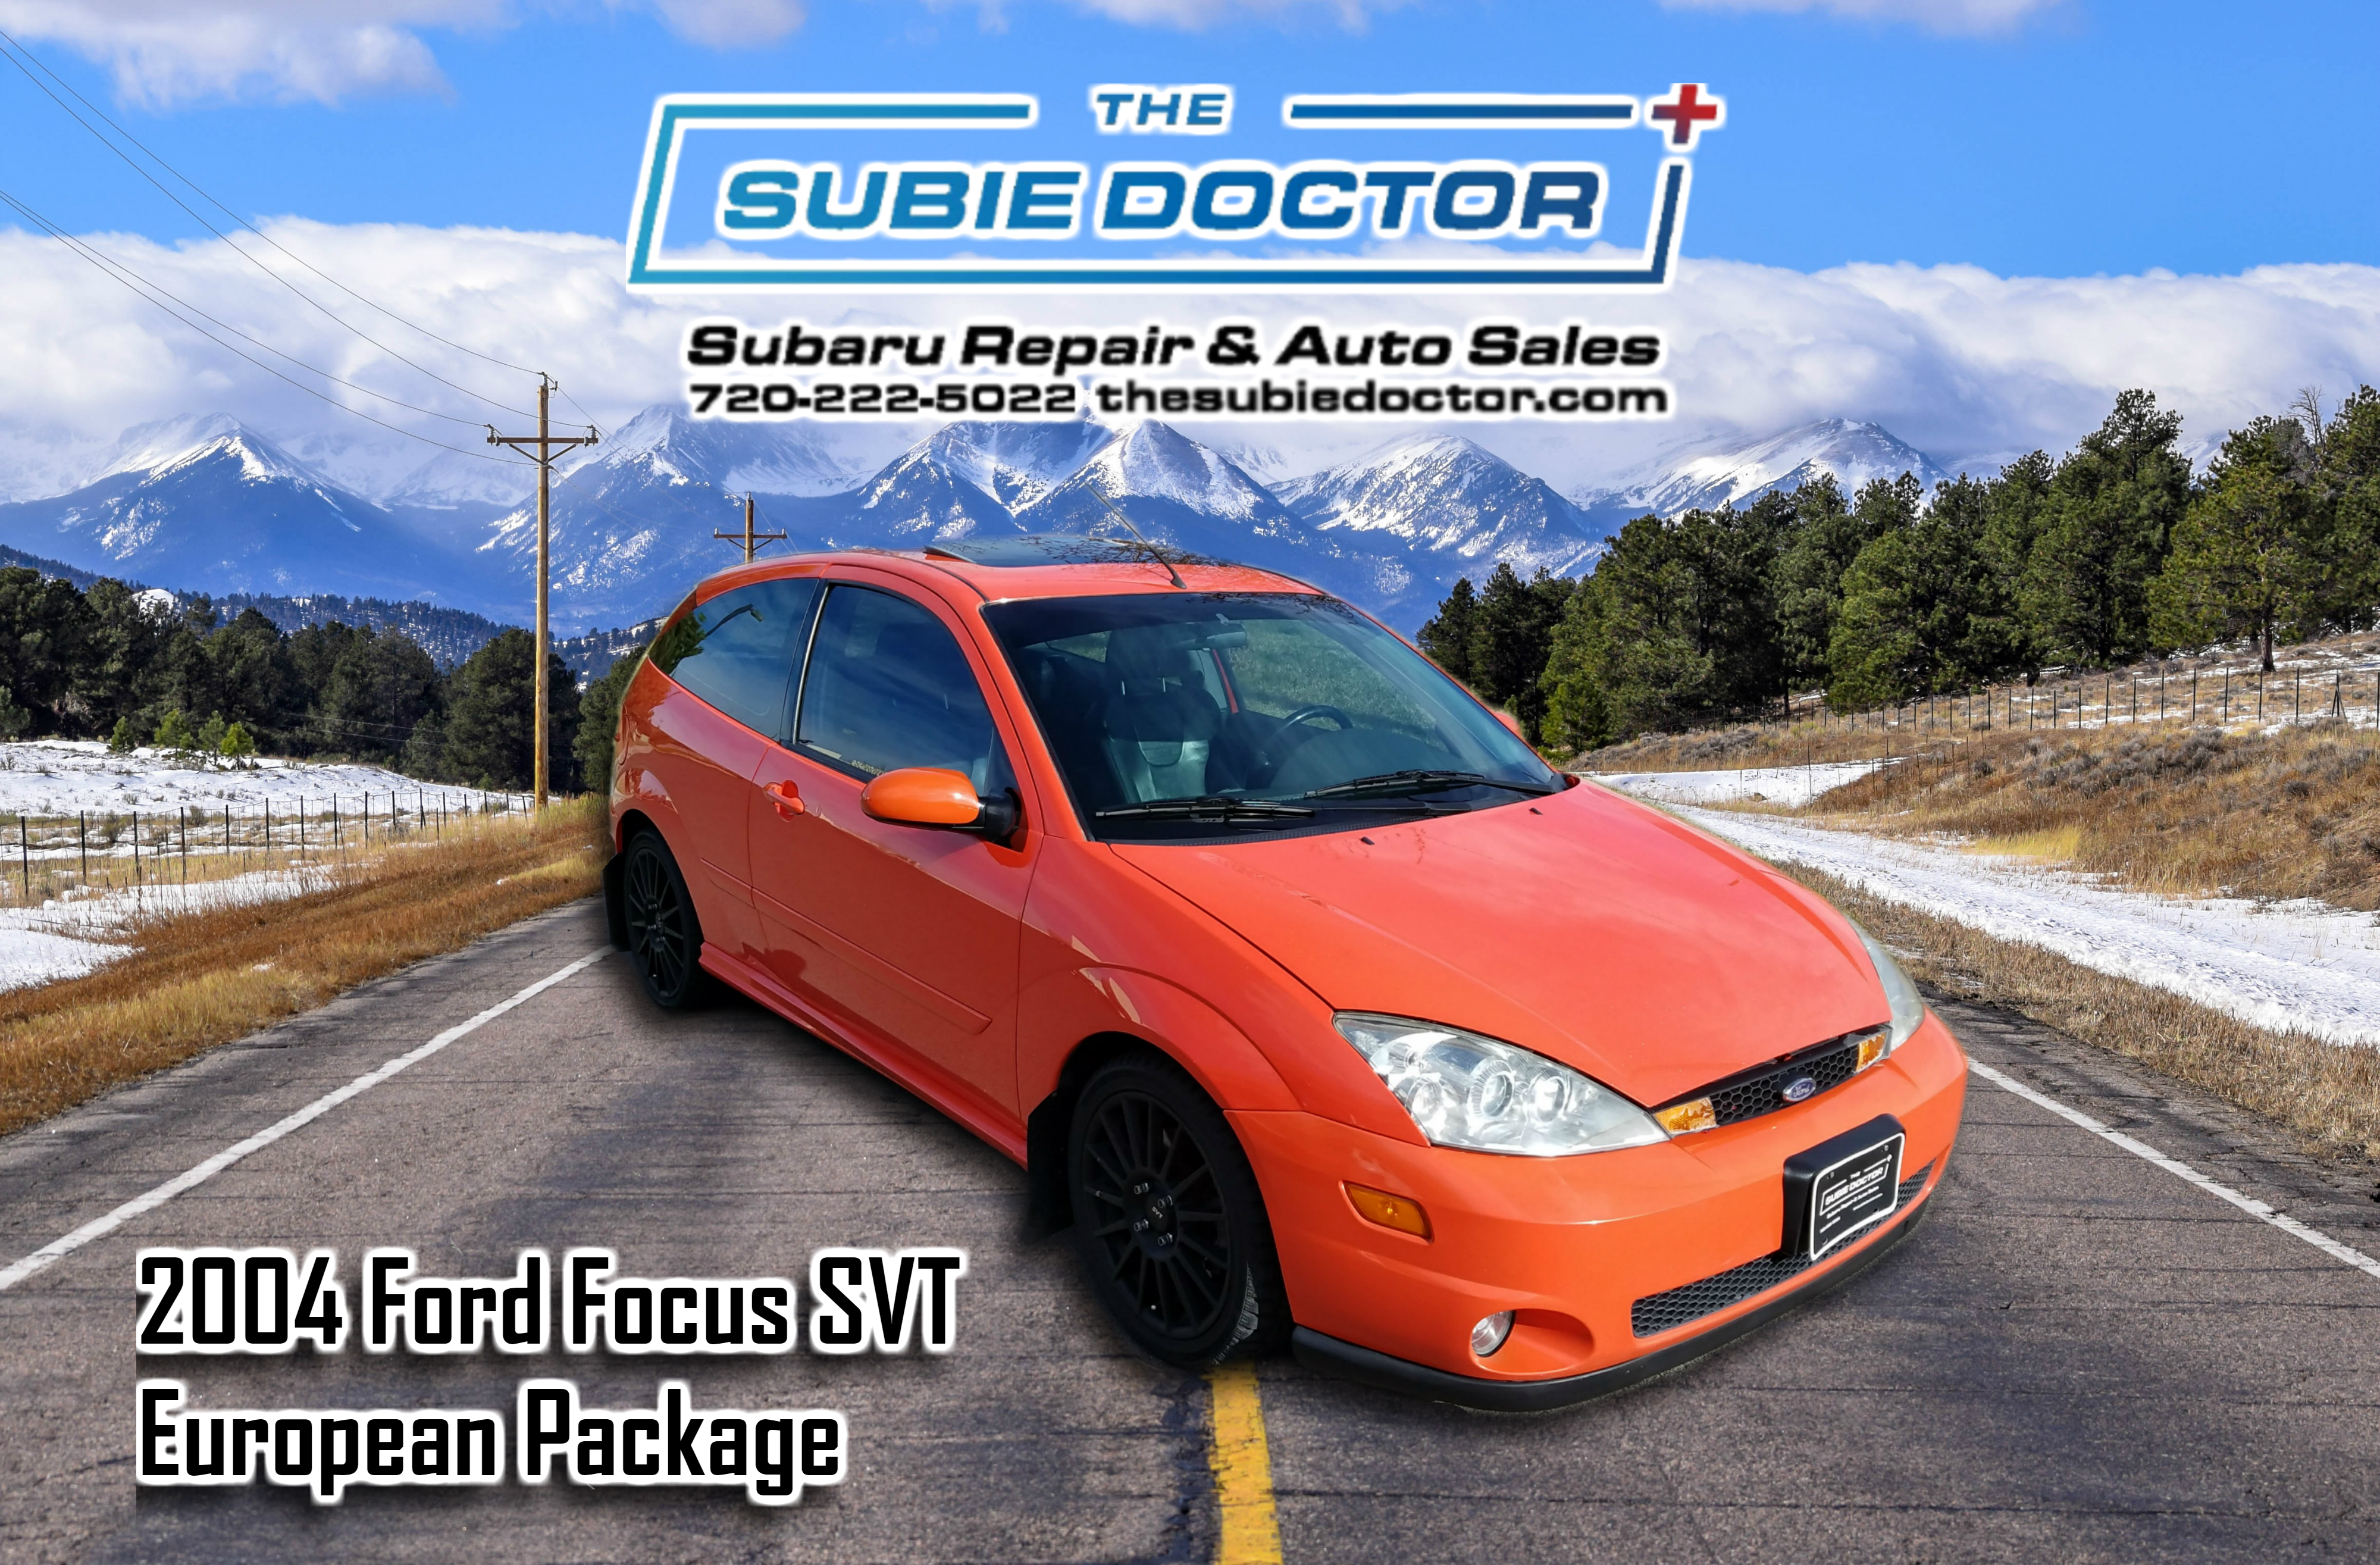 2004 Ford Focus SVT for sale in Denver, Colorado at The Subie Doctor